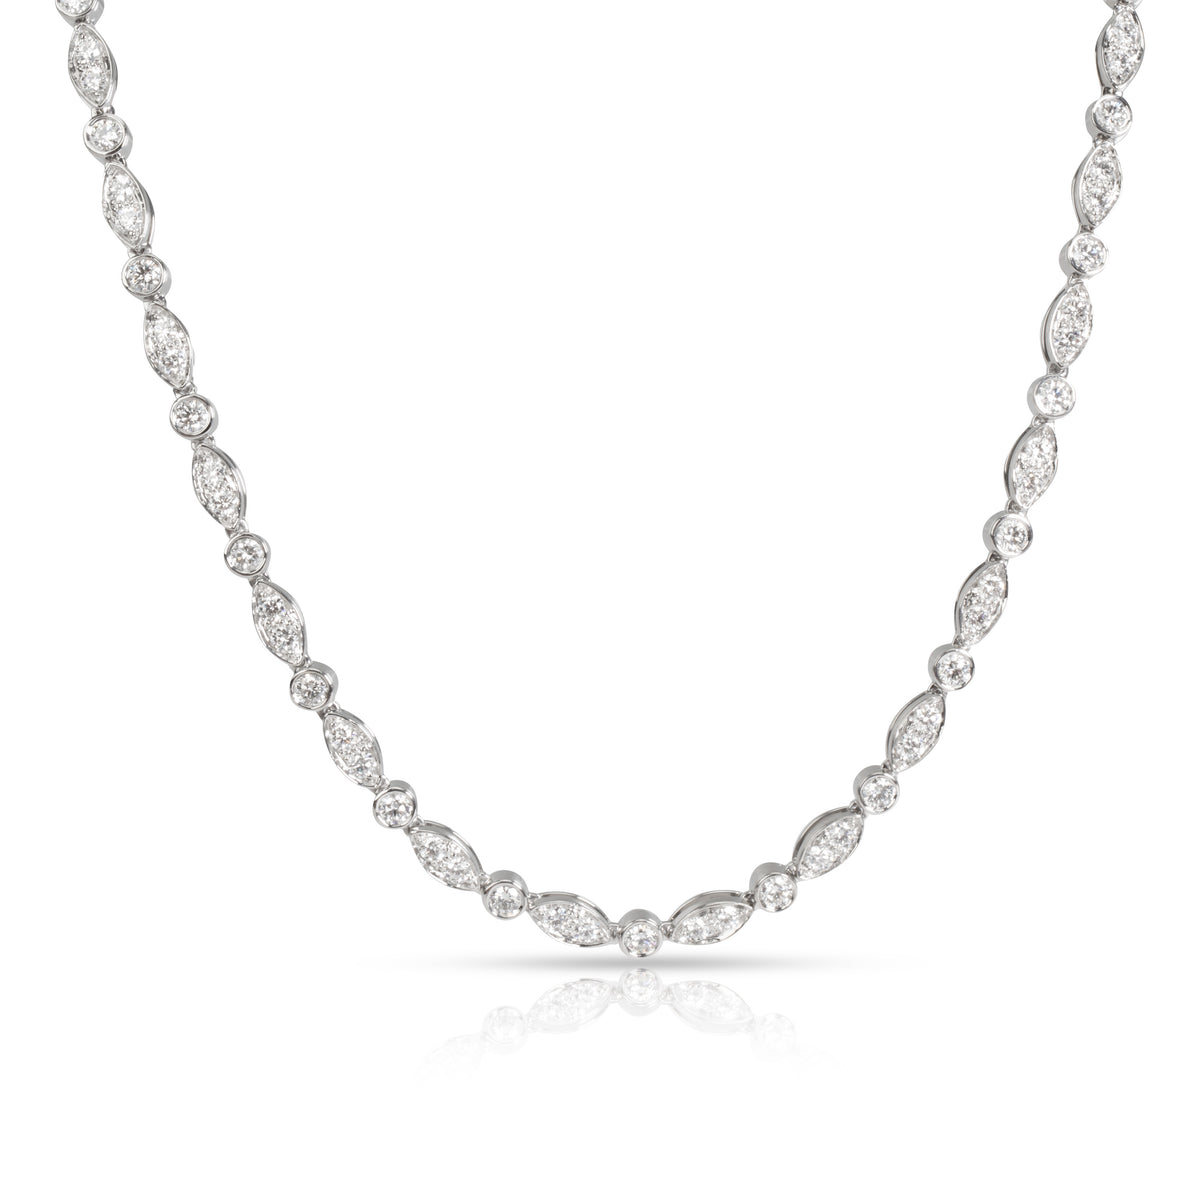 Tiffany & Co. Swing Diamond Tennis Necklace in  Platinum 3.60 CTW